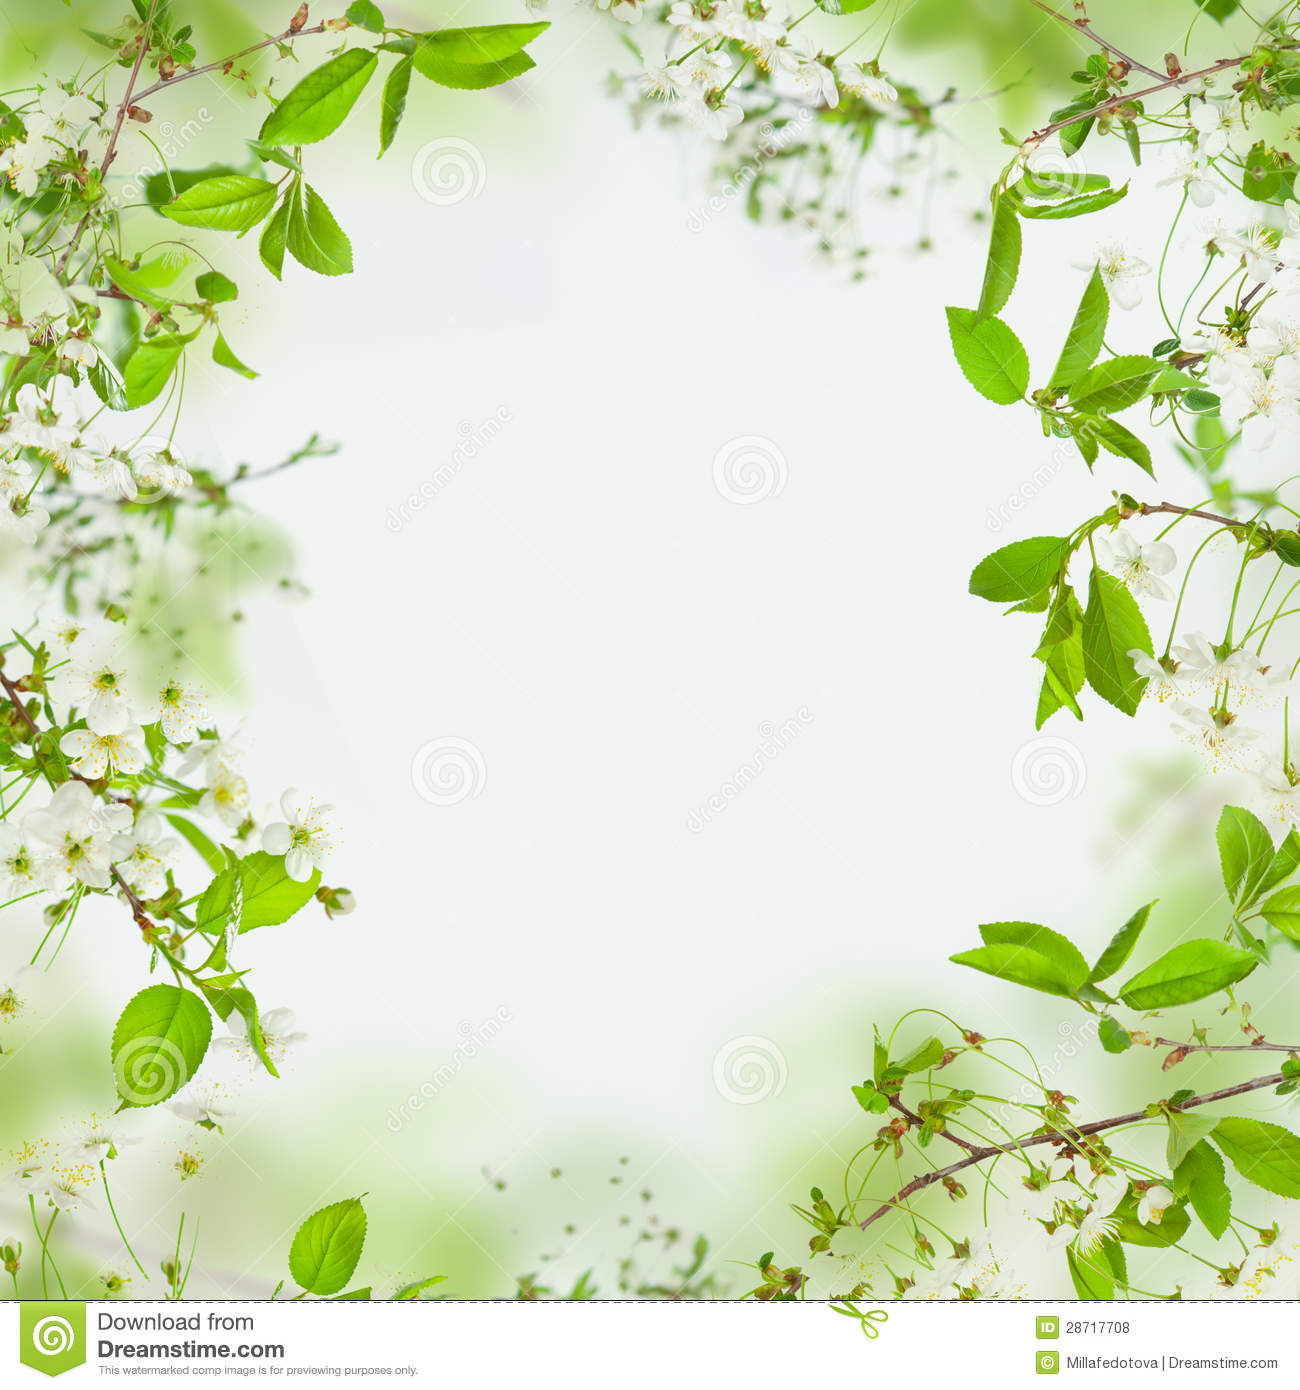 Spring Green Leaves And Flowers Background With Plants: Spring Frame Of Flowers And Green Leaves Stock Photo